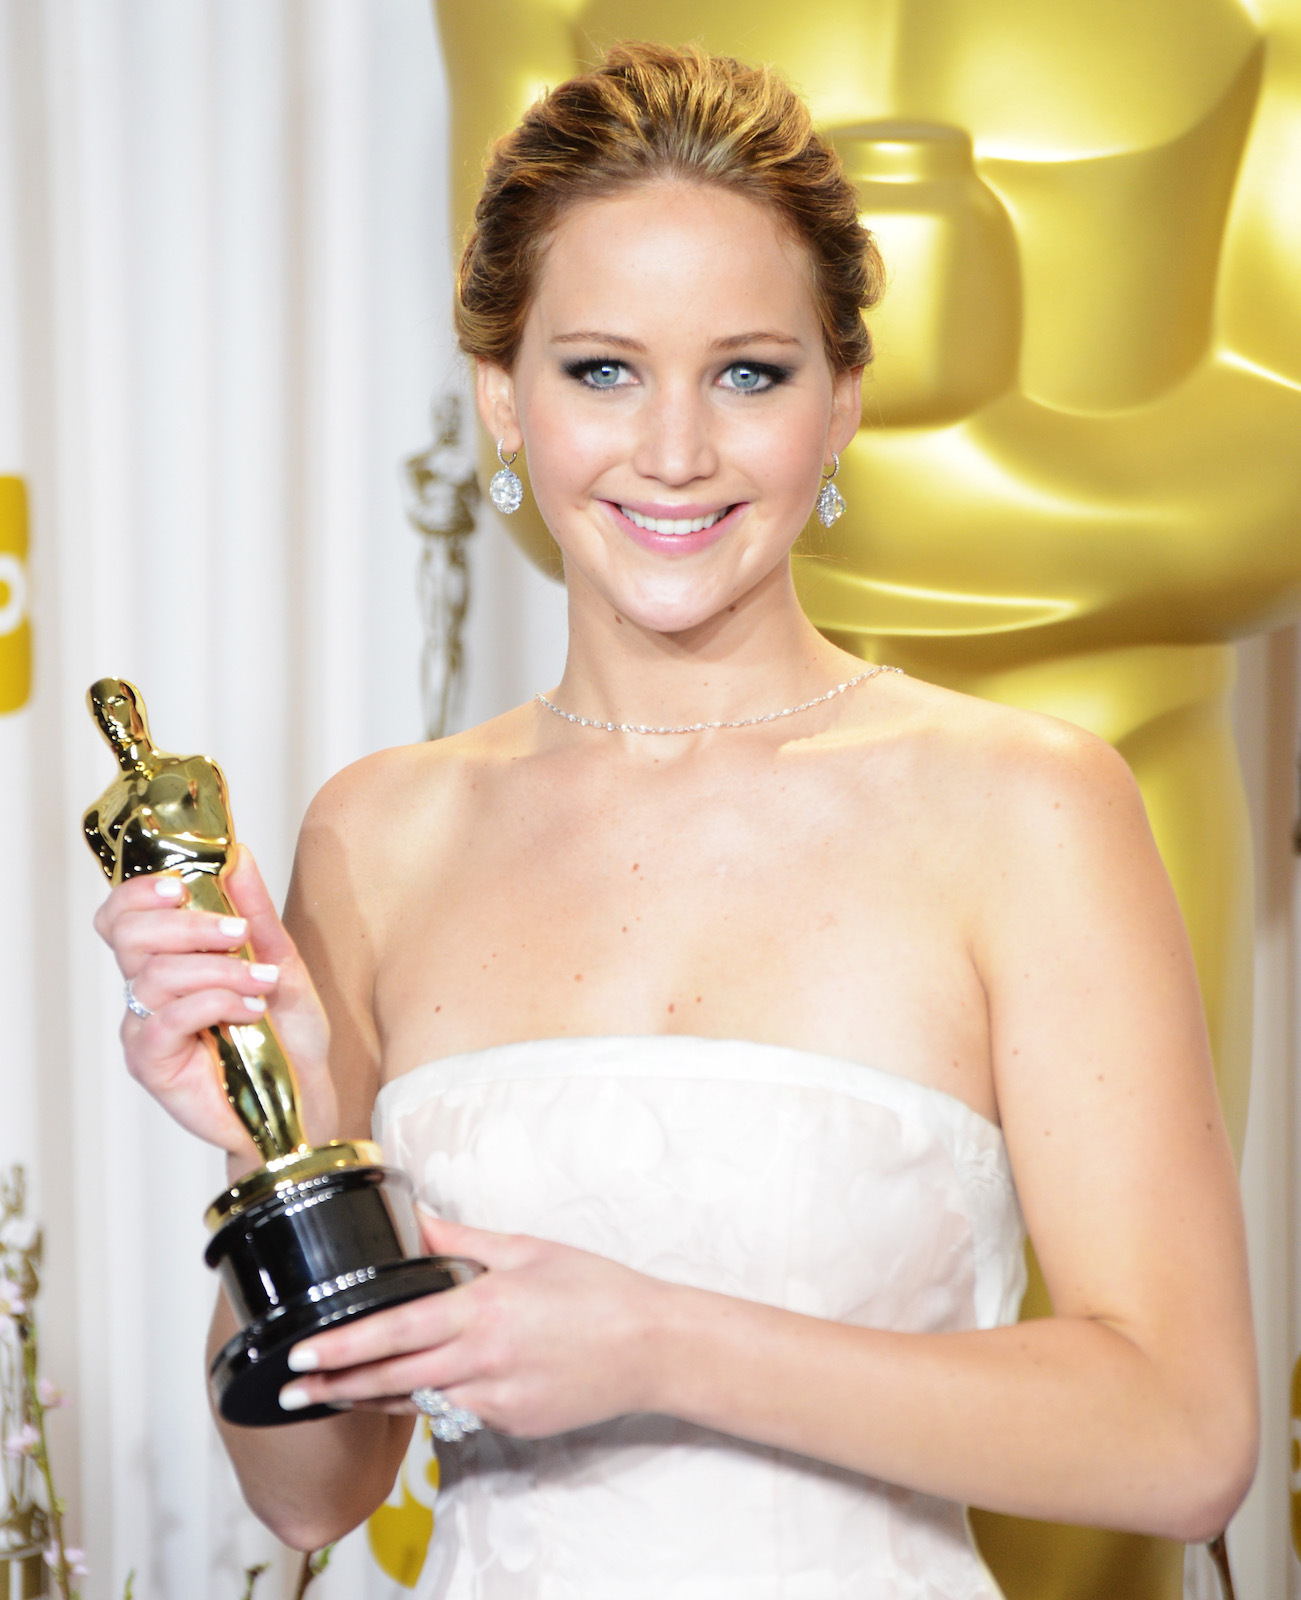 Jennifer Lawrence holding her Academy Award at the 2013 Academy Awards